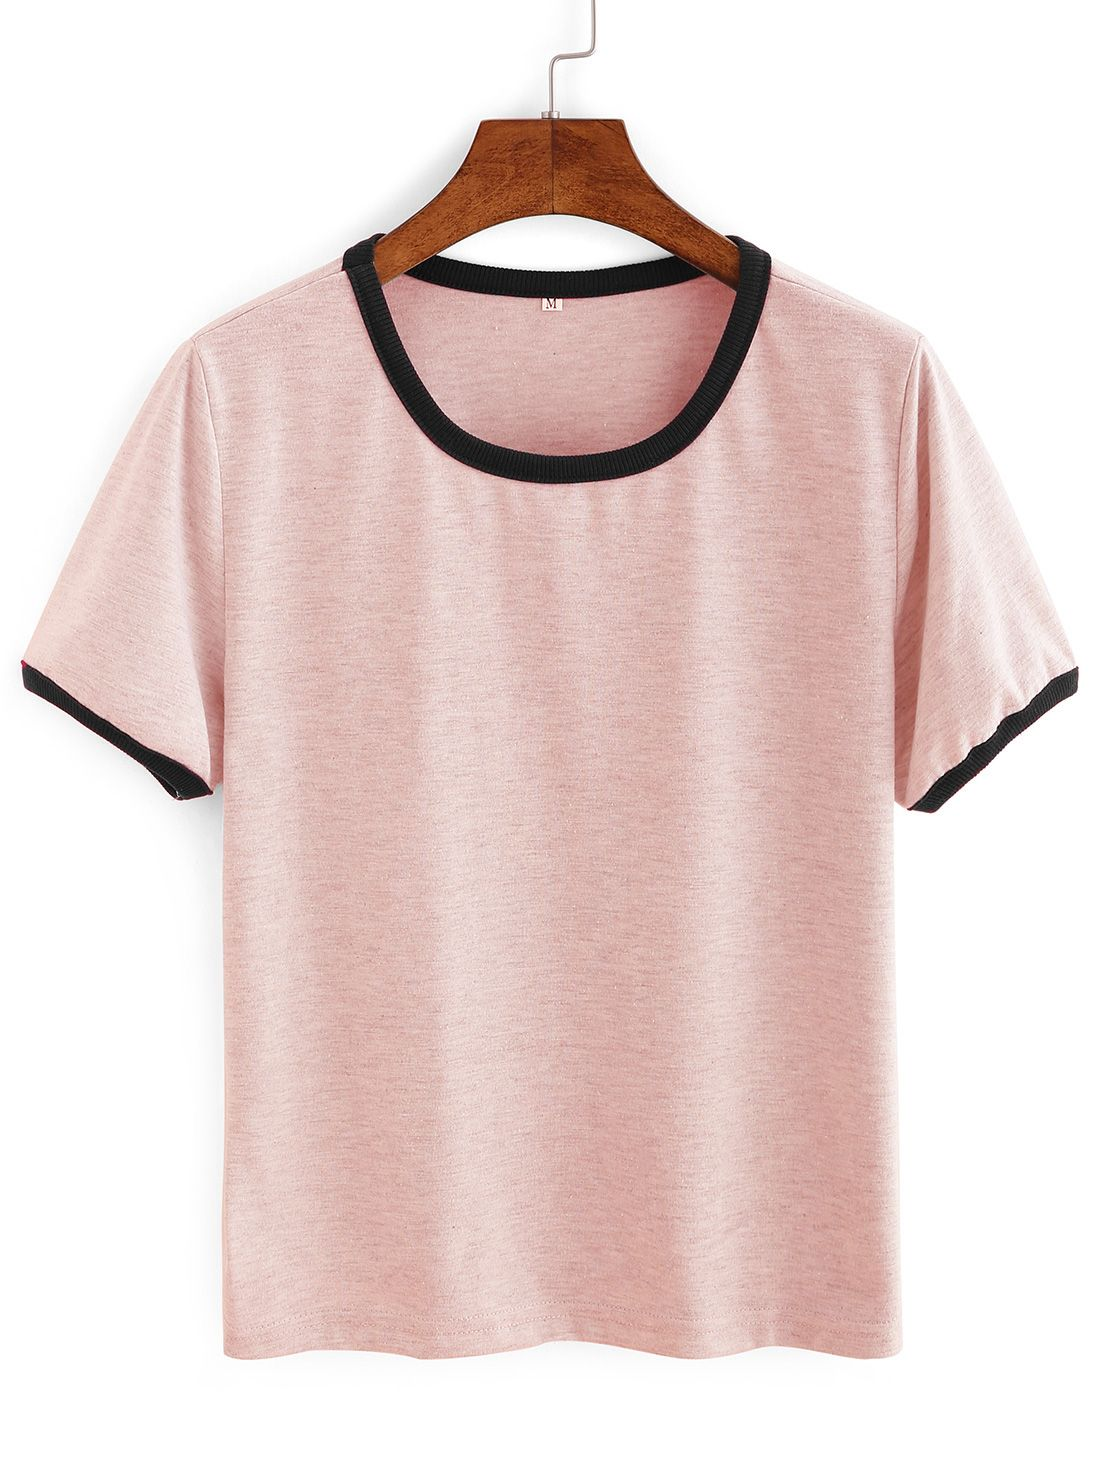 993be51a696  AdoreWe  ROMWE T-shirts - Designer ROMWE Pink Contrast Round Neck T-shirt  - AdoreWe.com